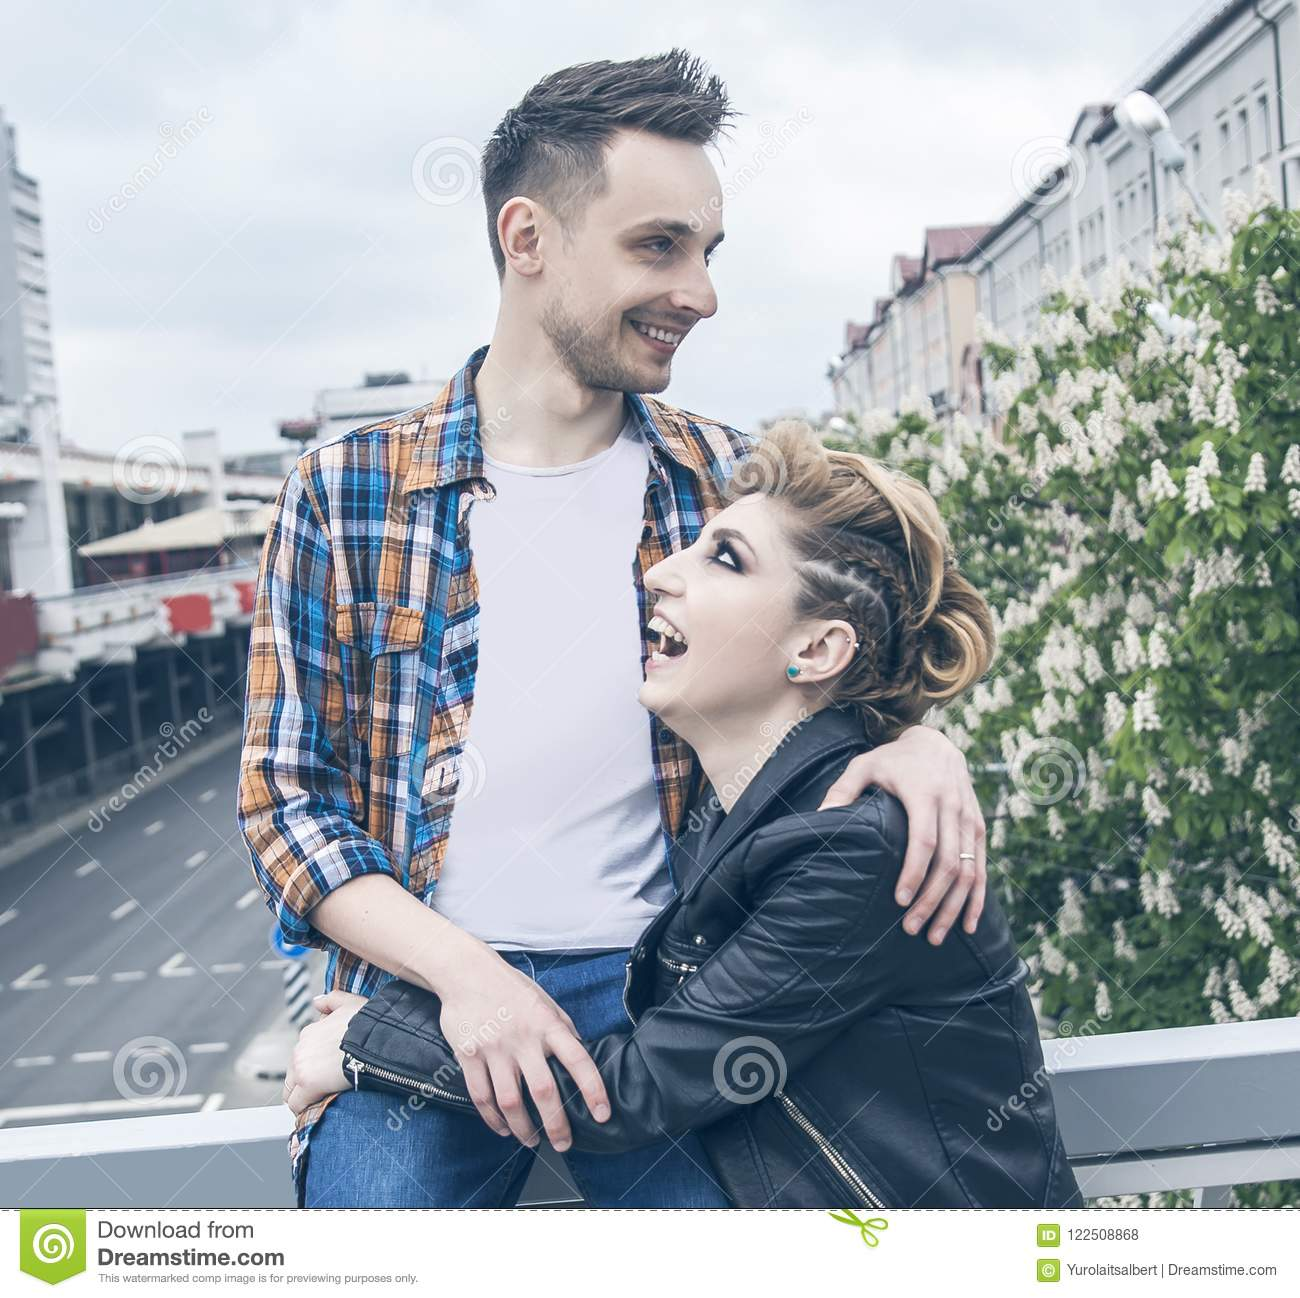 Dating in a big city